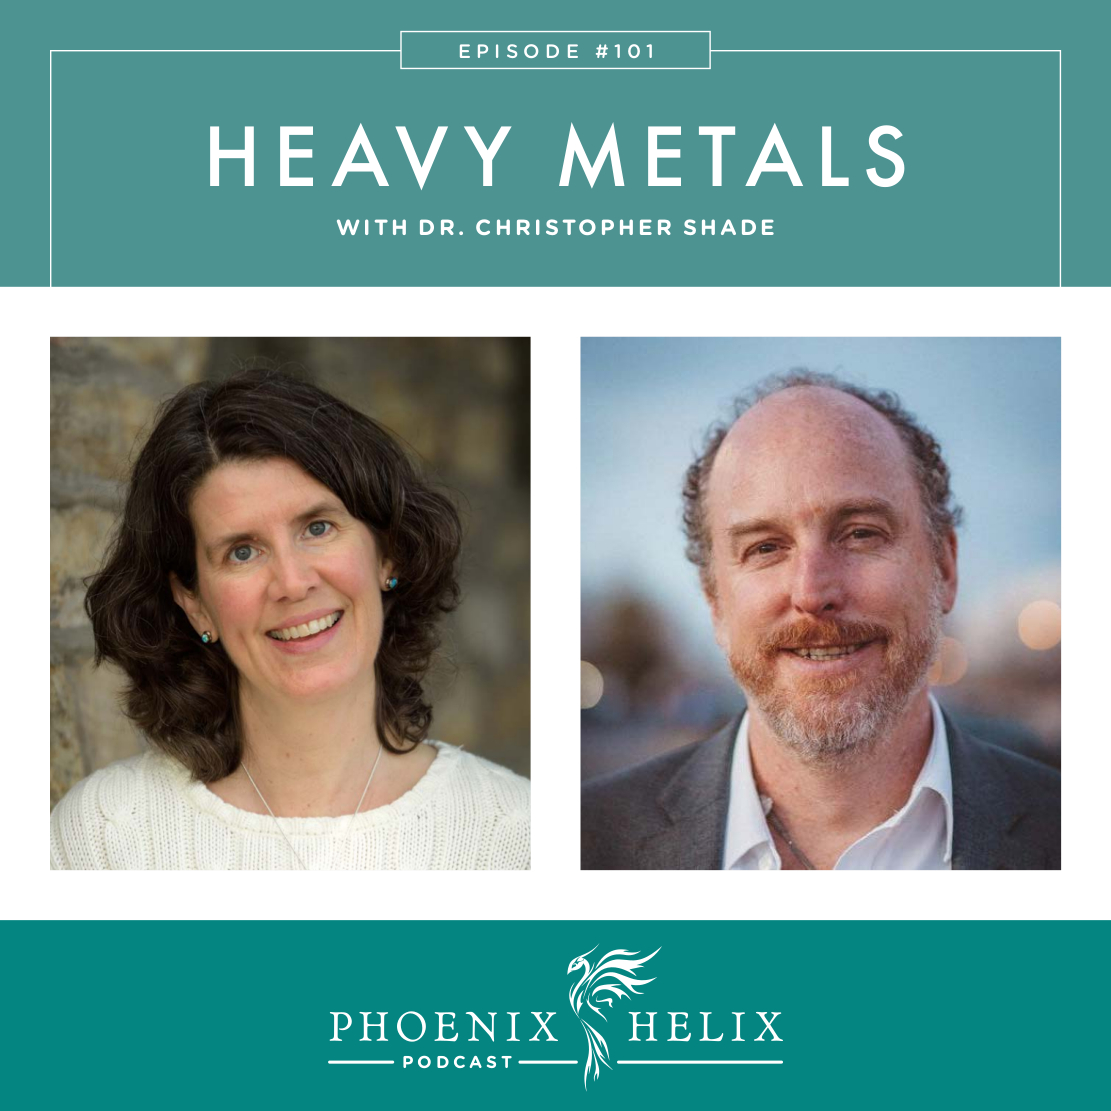 Heavy Metals with Dr. Christopher Shade | Phoenix Helix Podcast